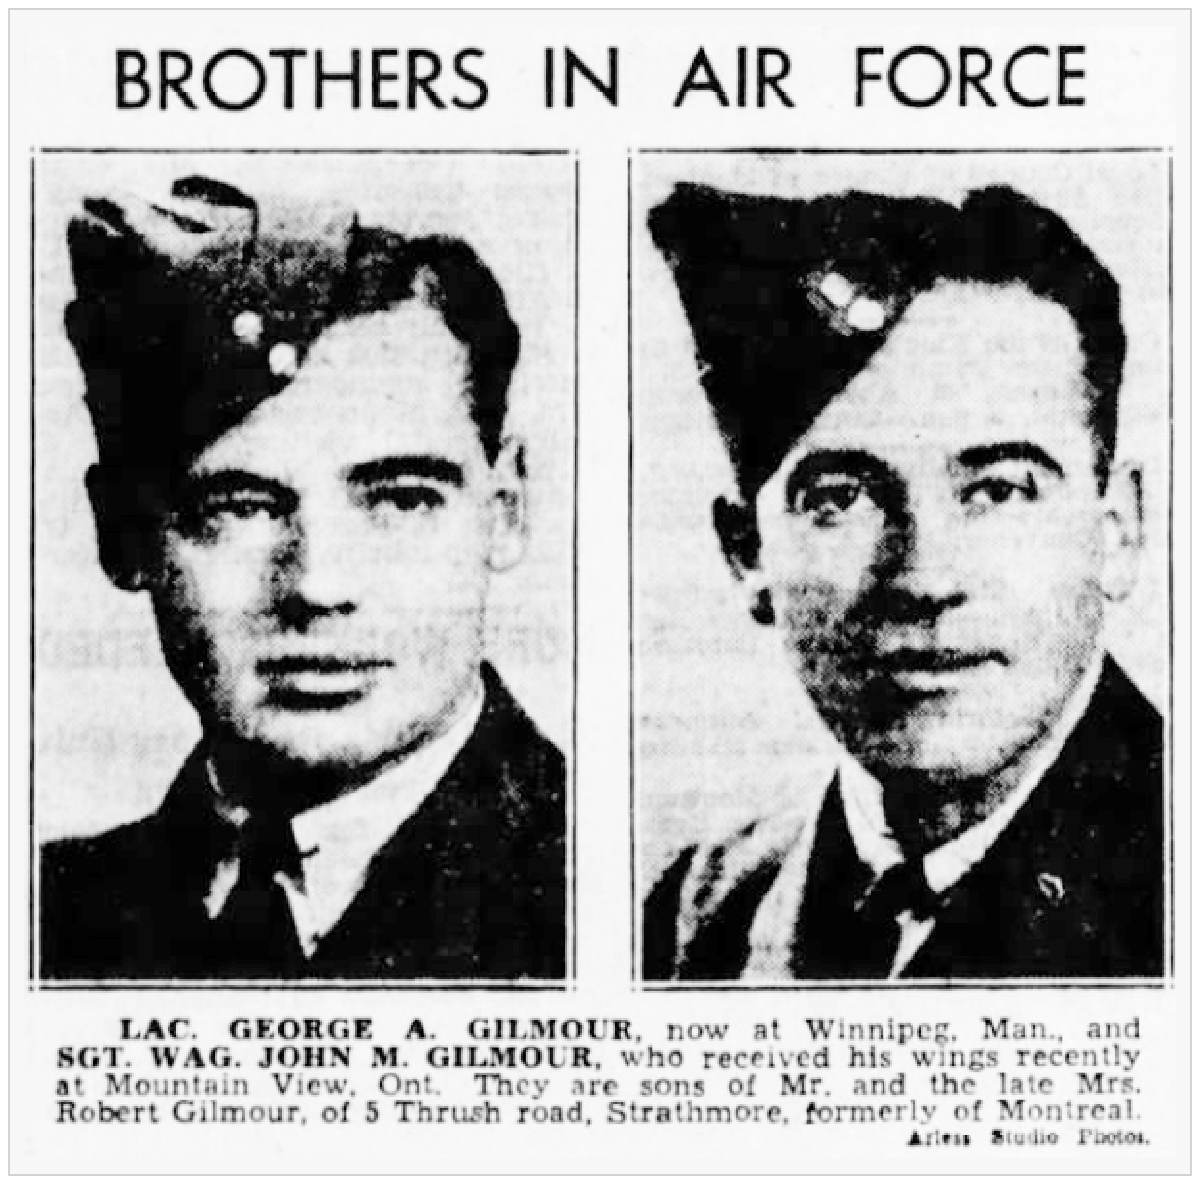 Gilmour brothers in Air Force